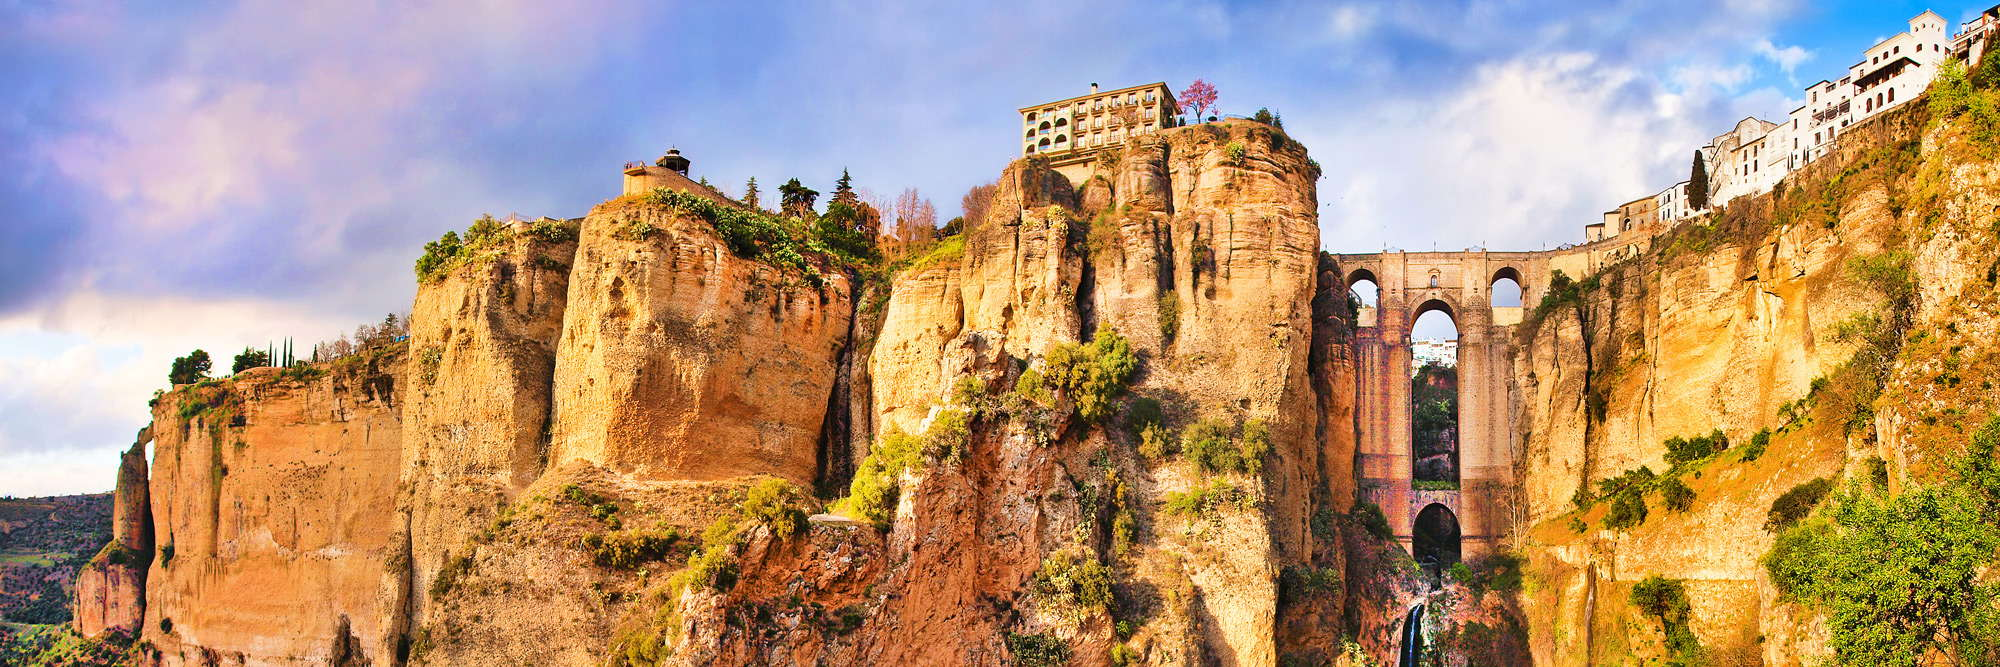 Amazing village perched atop the rocks. Ronda